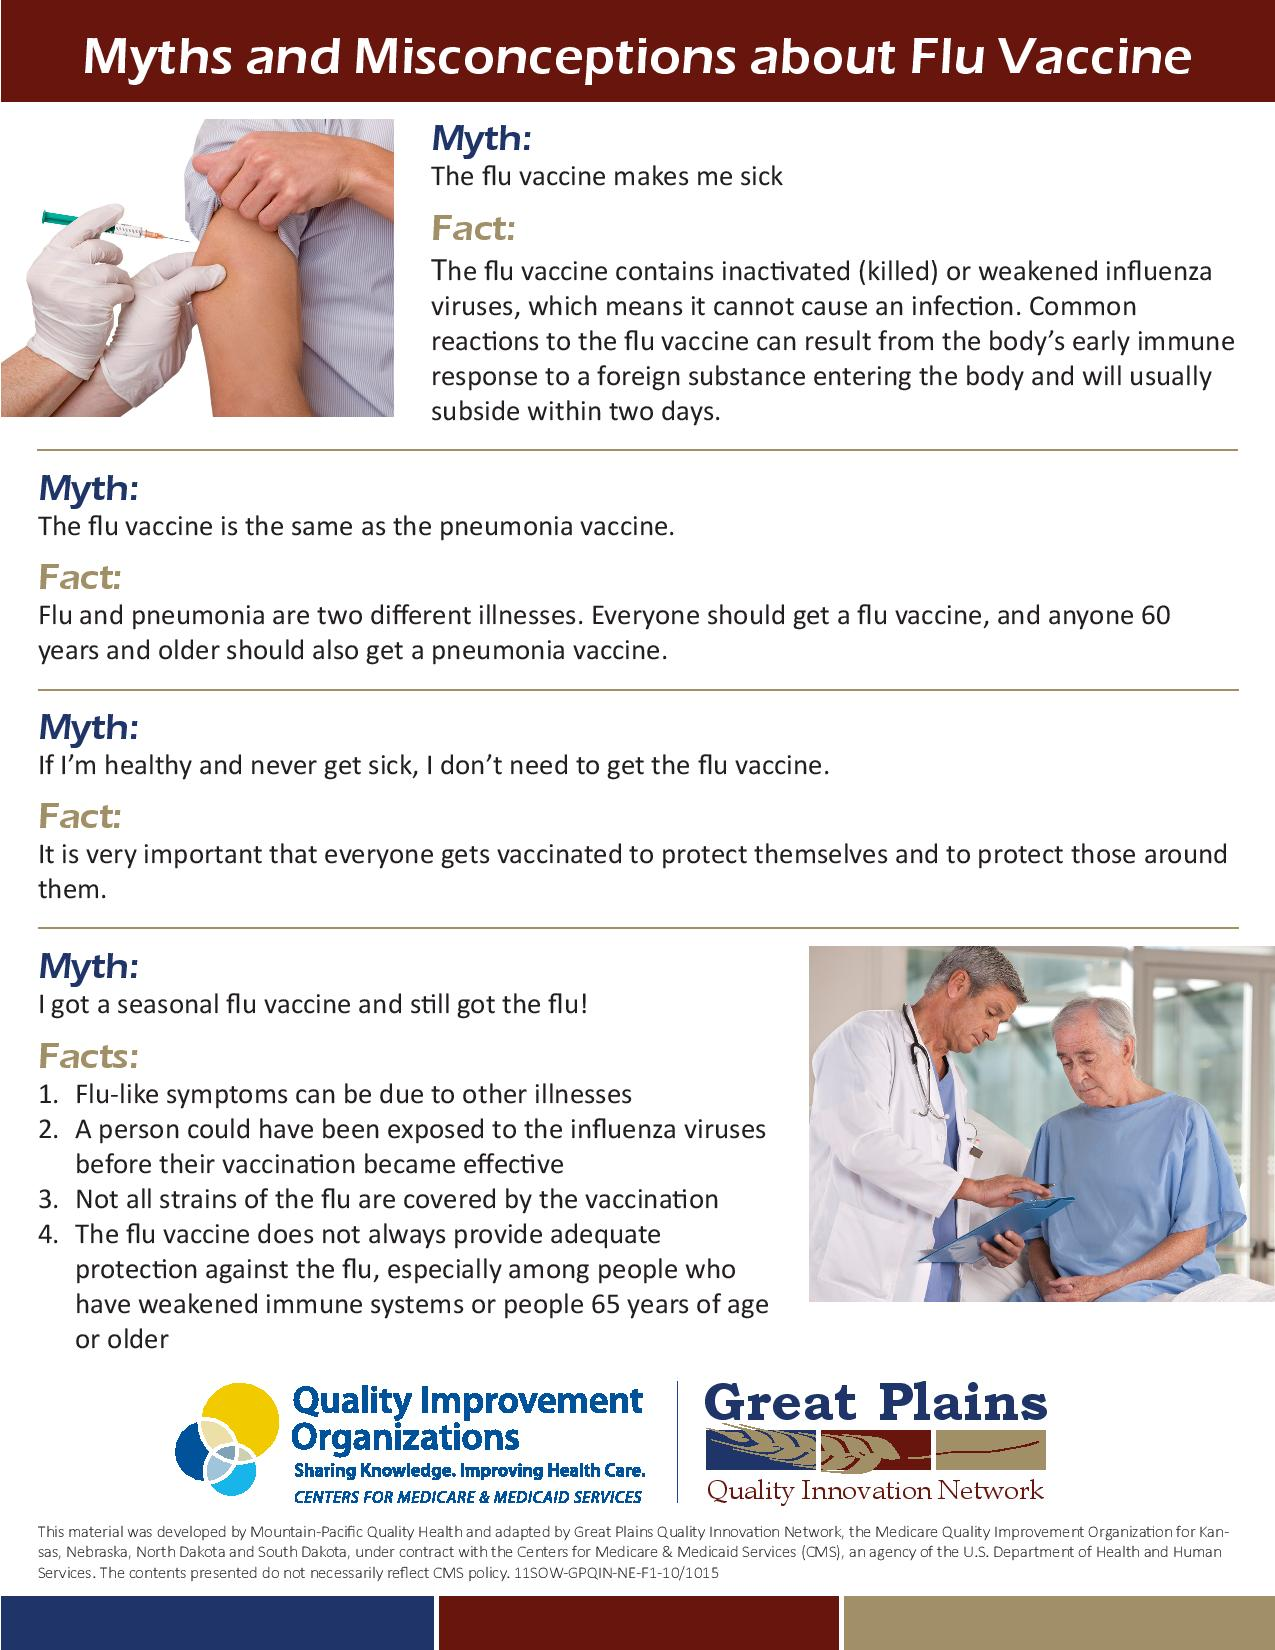 Myths_and_Misconceptions_about_the_Flu_Vaccine